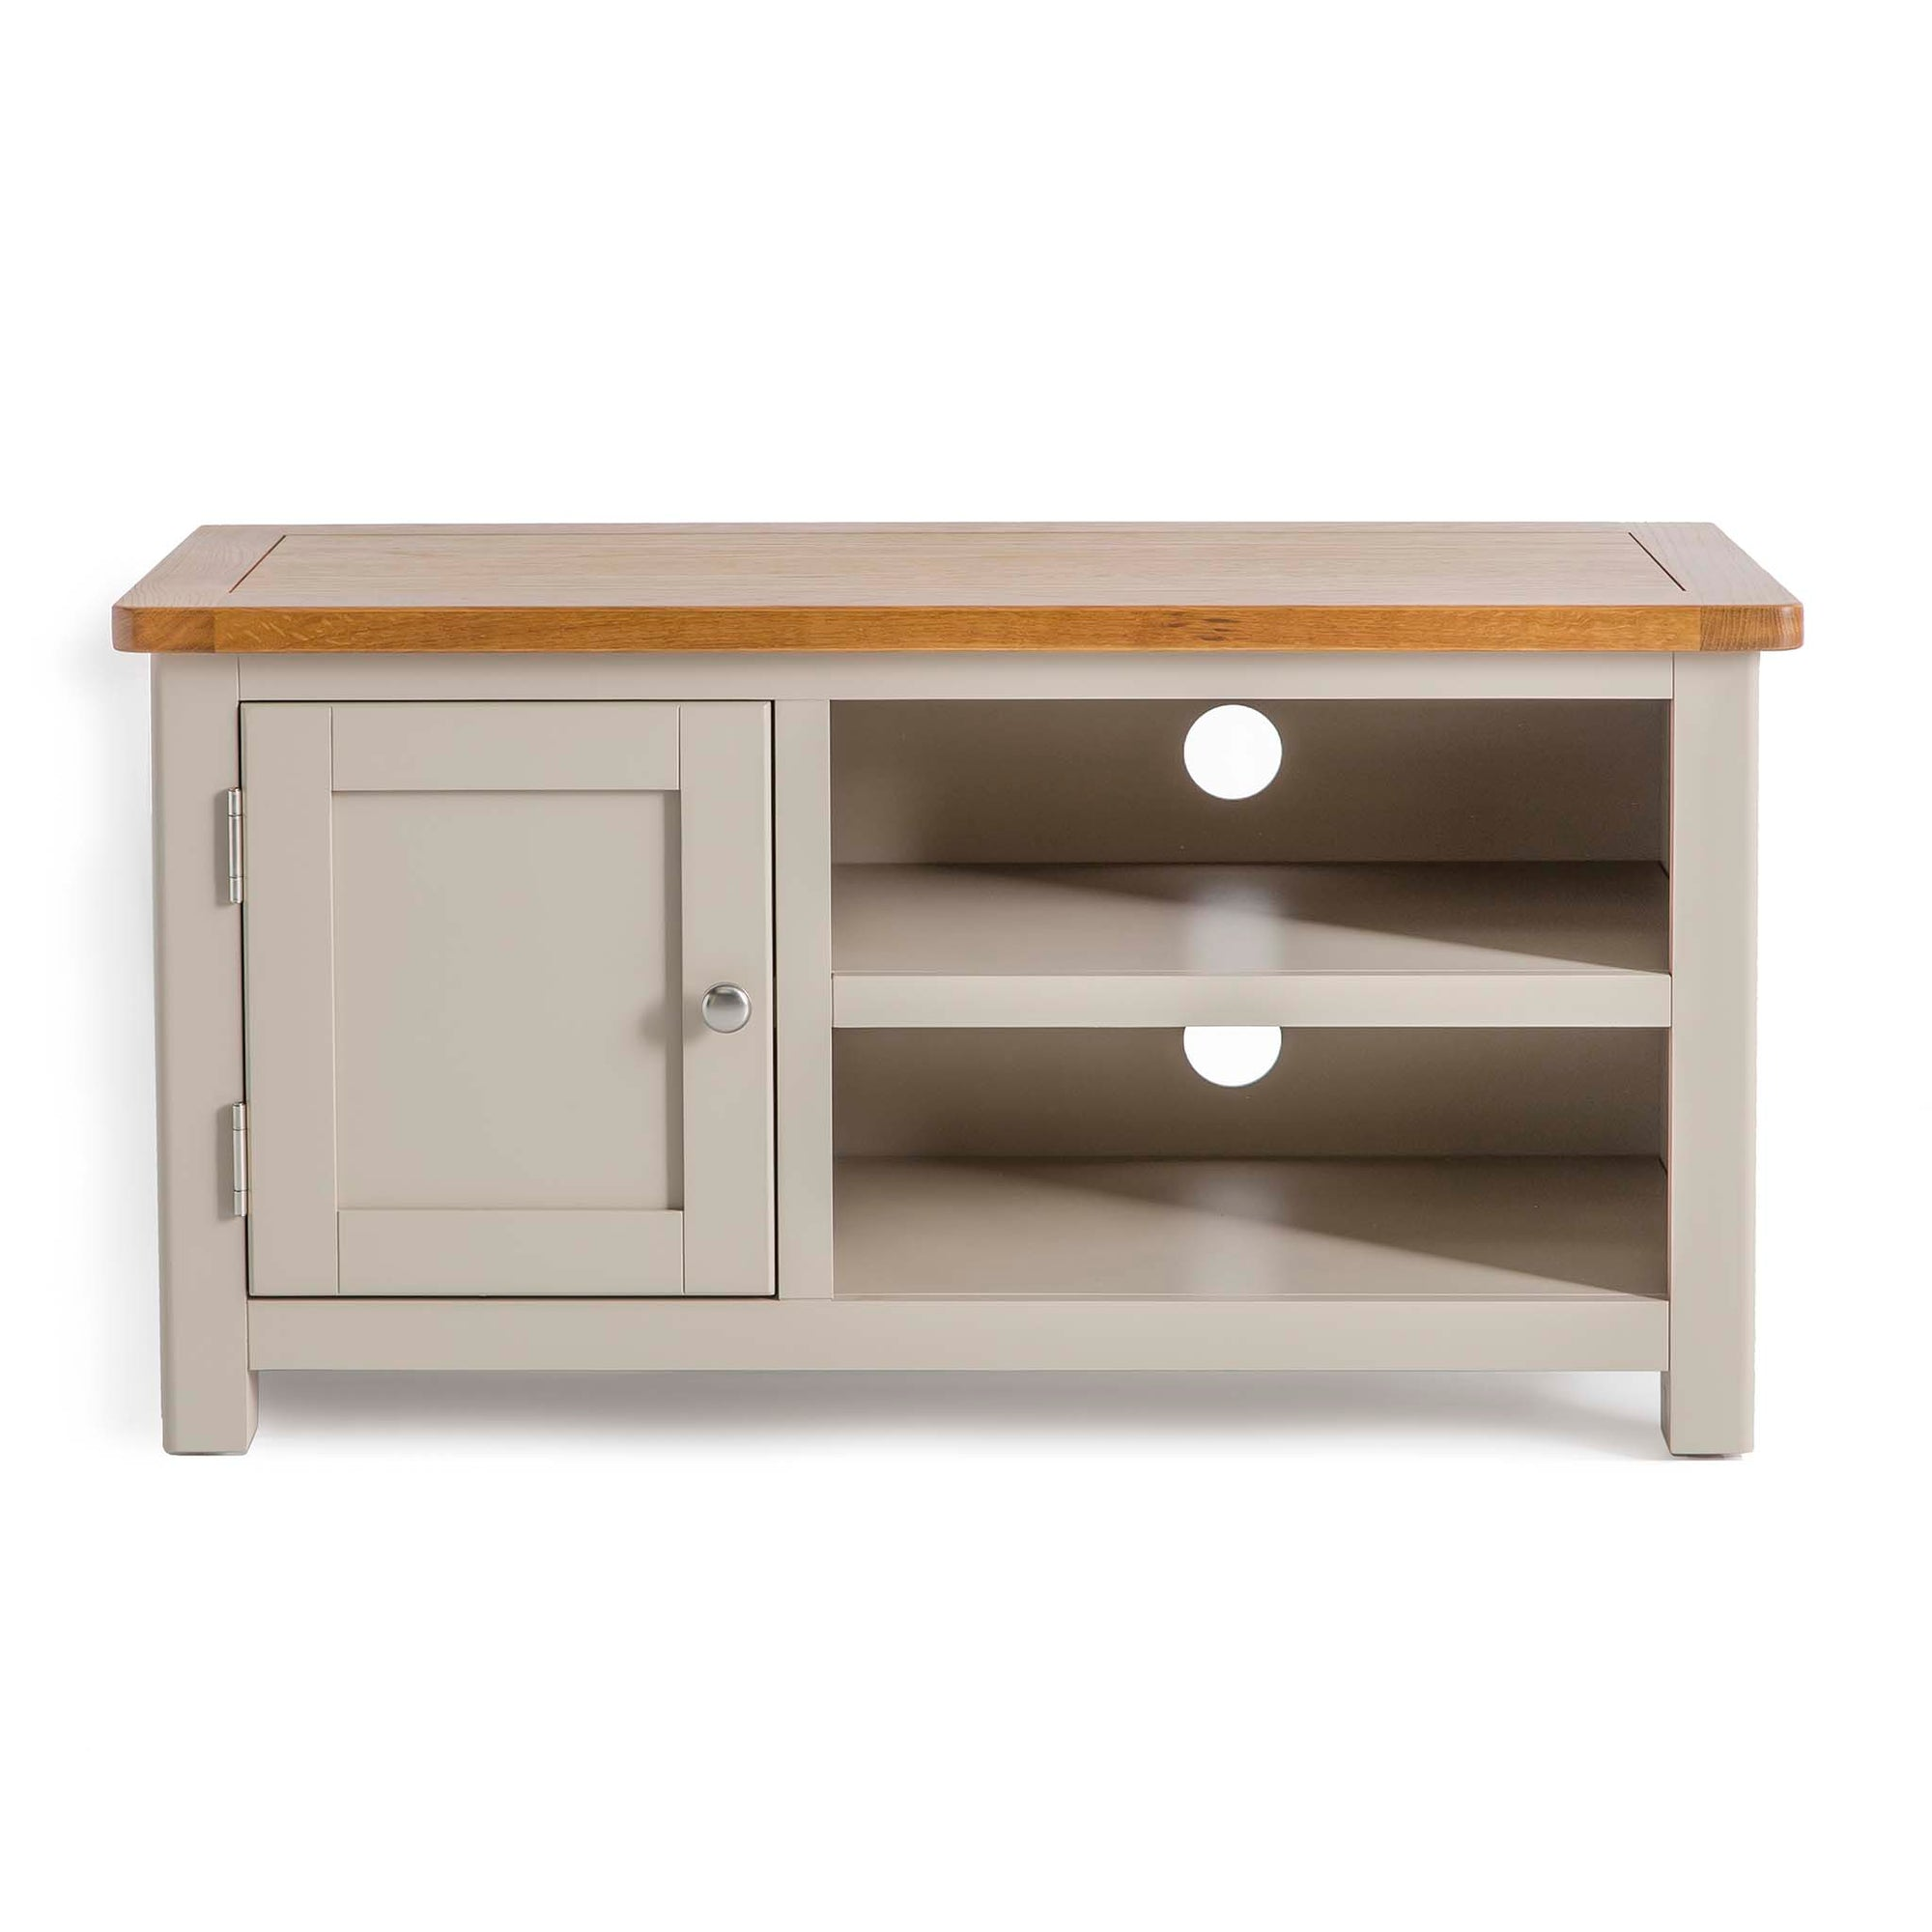 Padstow Stone Grey Small TV Stand with Storage Cabinet by Roseland Furniture